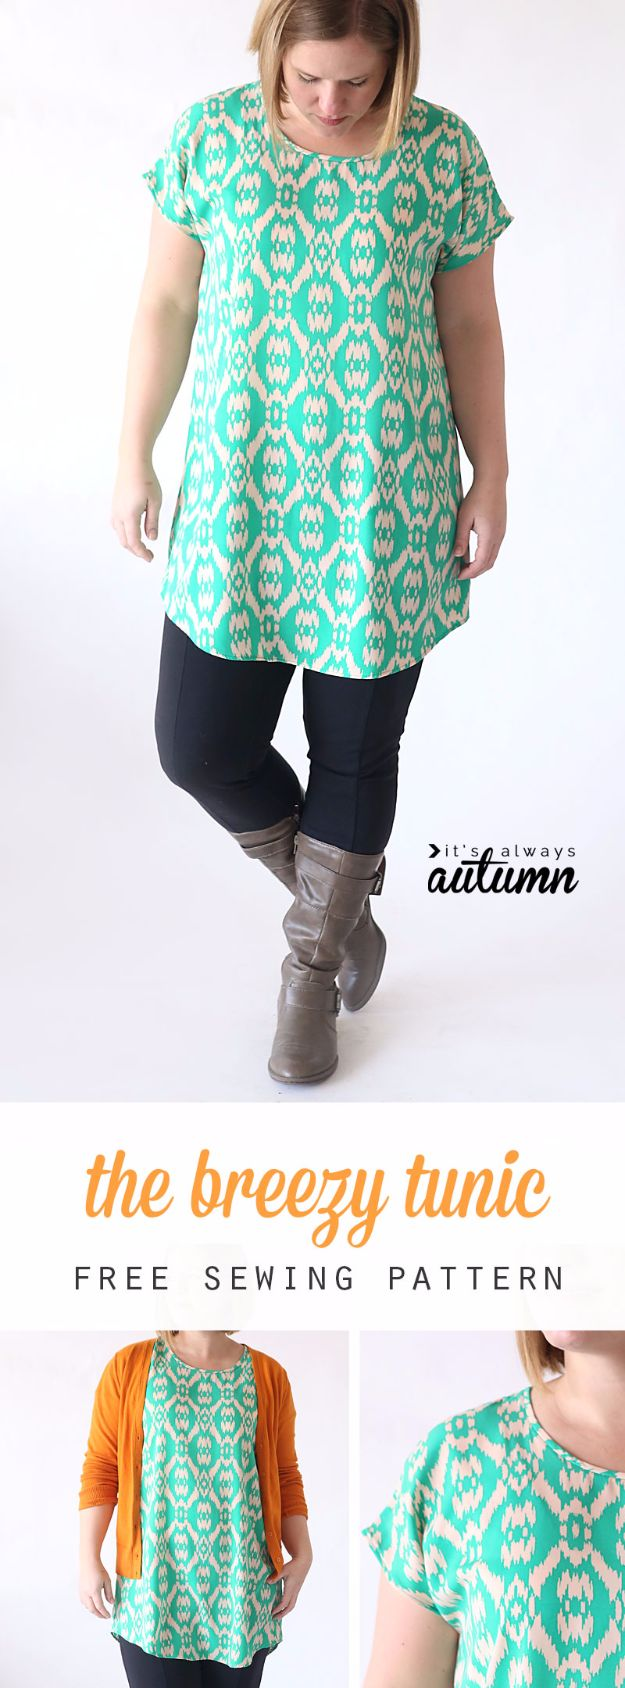 DIY Fashion for Spring - Breezy Tee Tunic - Easy Homemade Clothing Tutorials and Things To Make To Wear - Cute Patterns and Projects for Women to Make, T-Shirts, Skirts, Dresses, Shorts and Ideas for Jeans and Pants - Tops, Tanks and Tees With Free Tutorial Ideas and Instructions http://diyjoy.com/fashion-for-spring